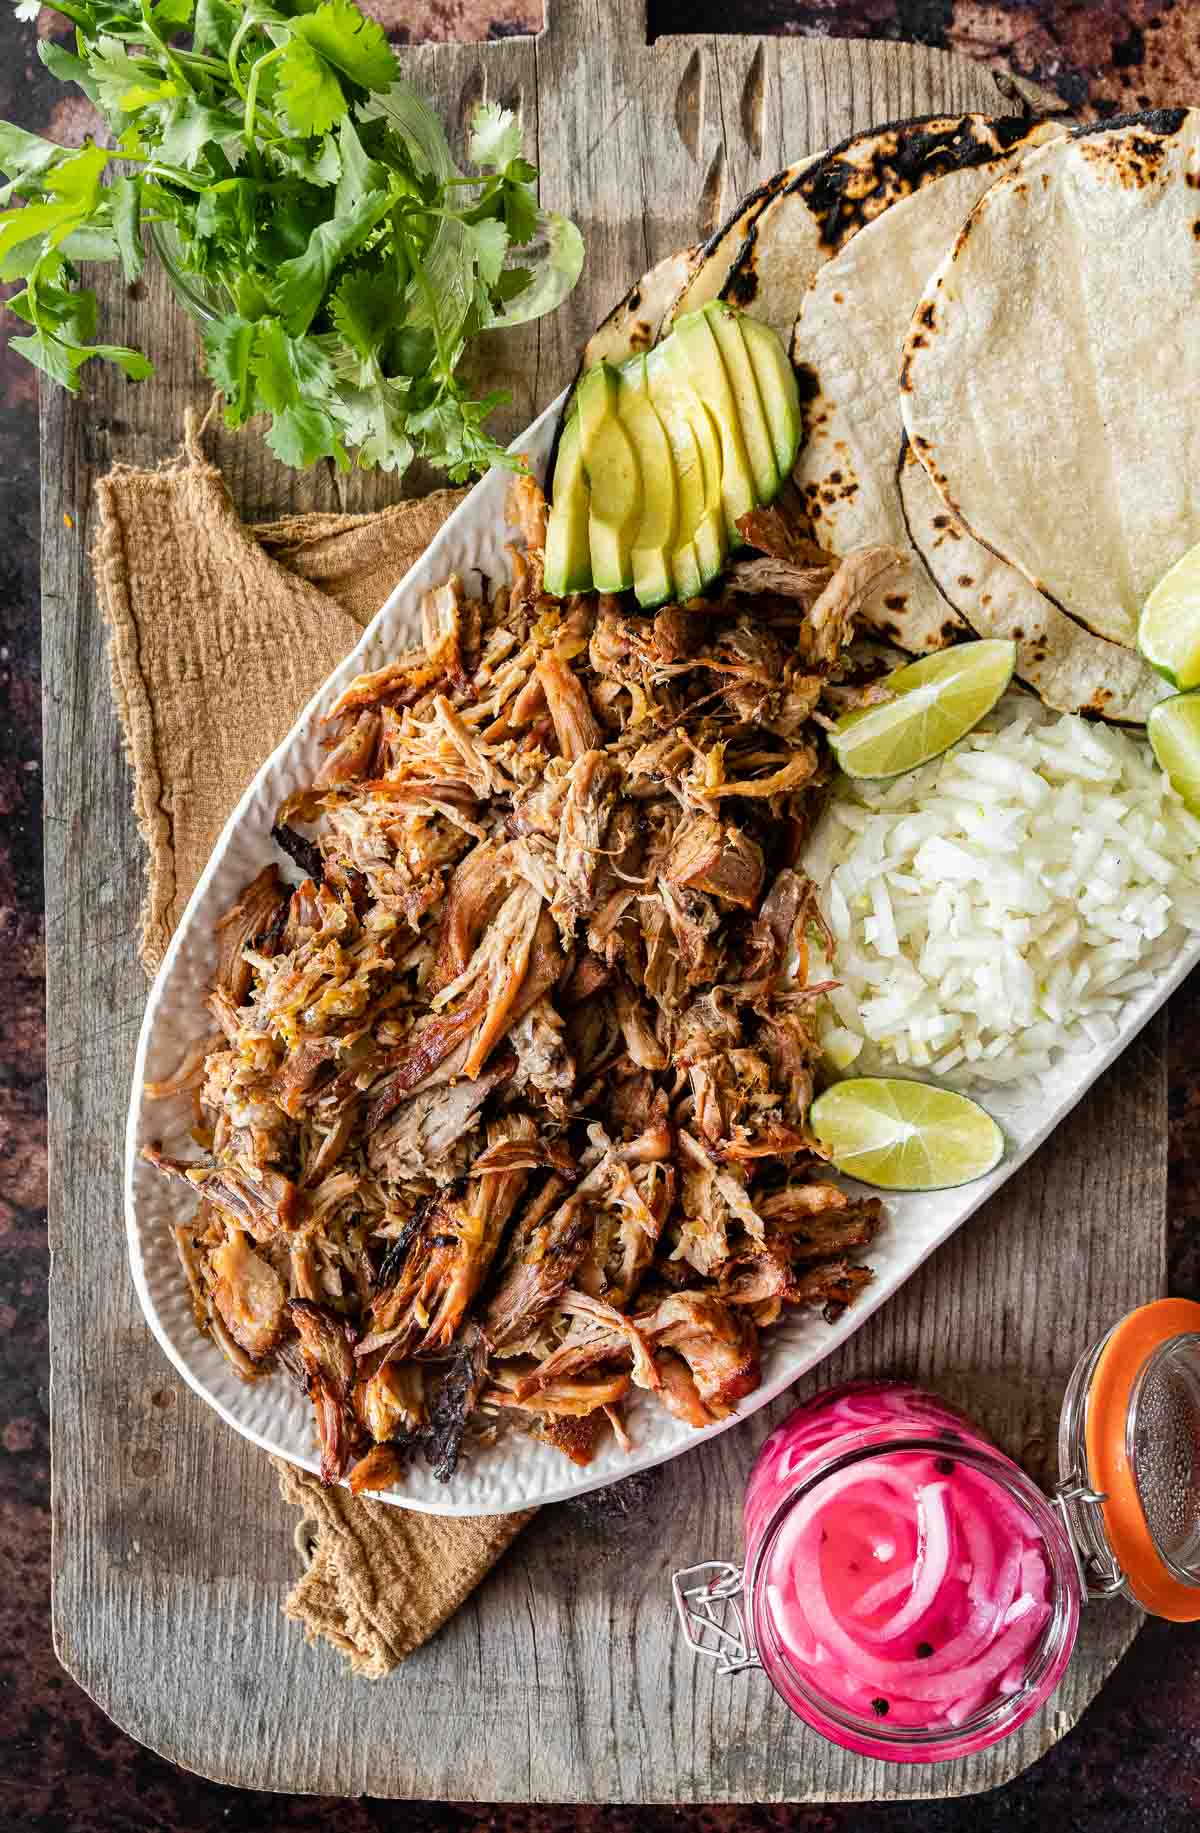 Pork Carnitas (Oven) on serving dish with rice, tortillas, limes, avocado, and pickled onions